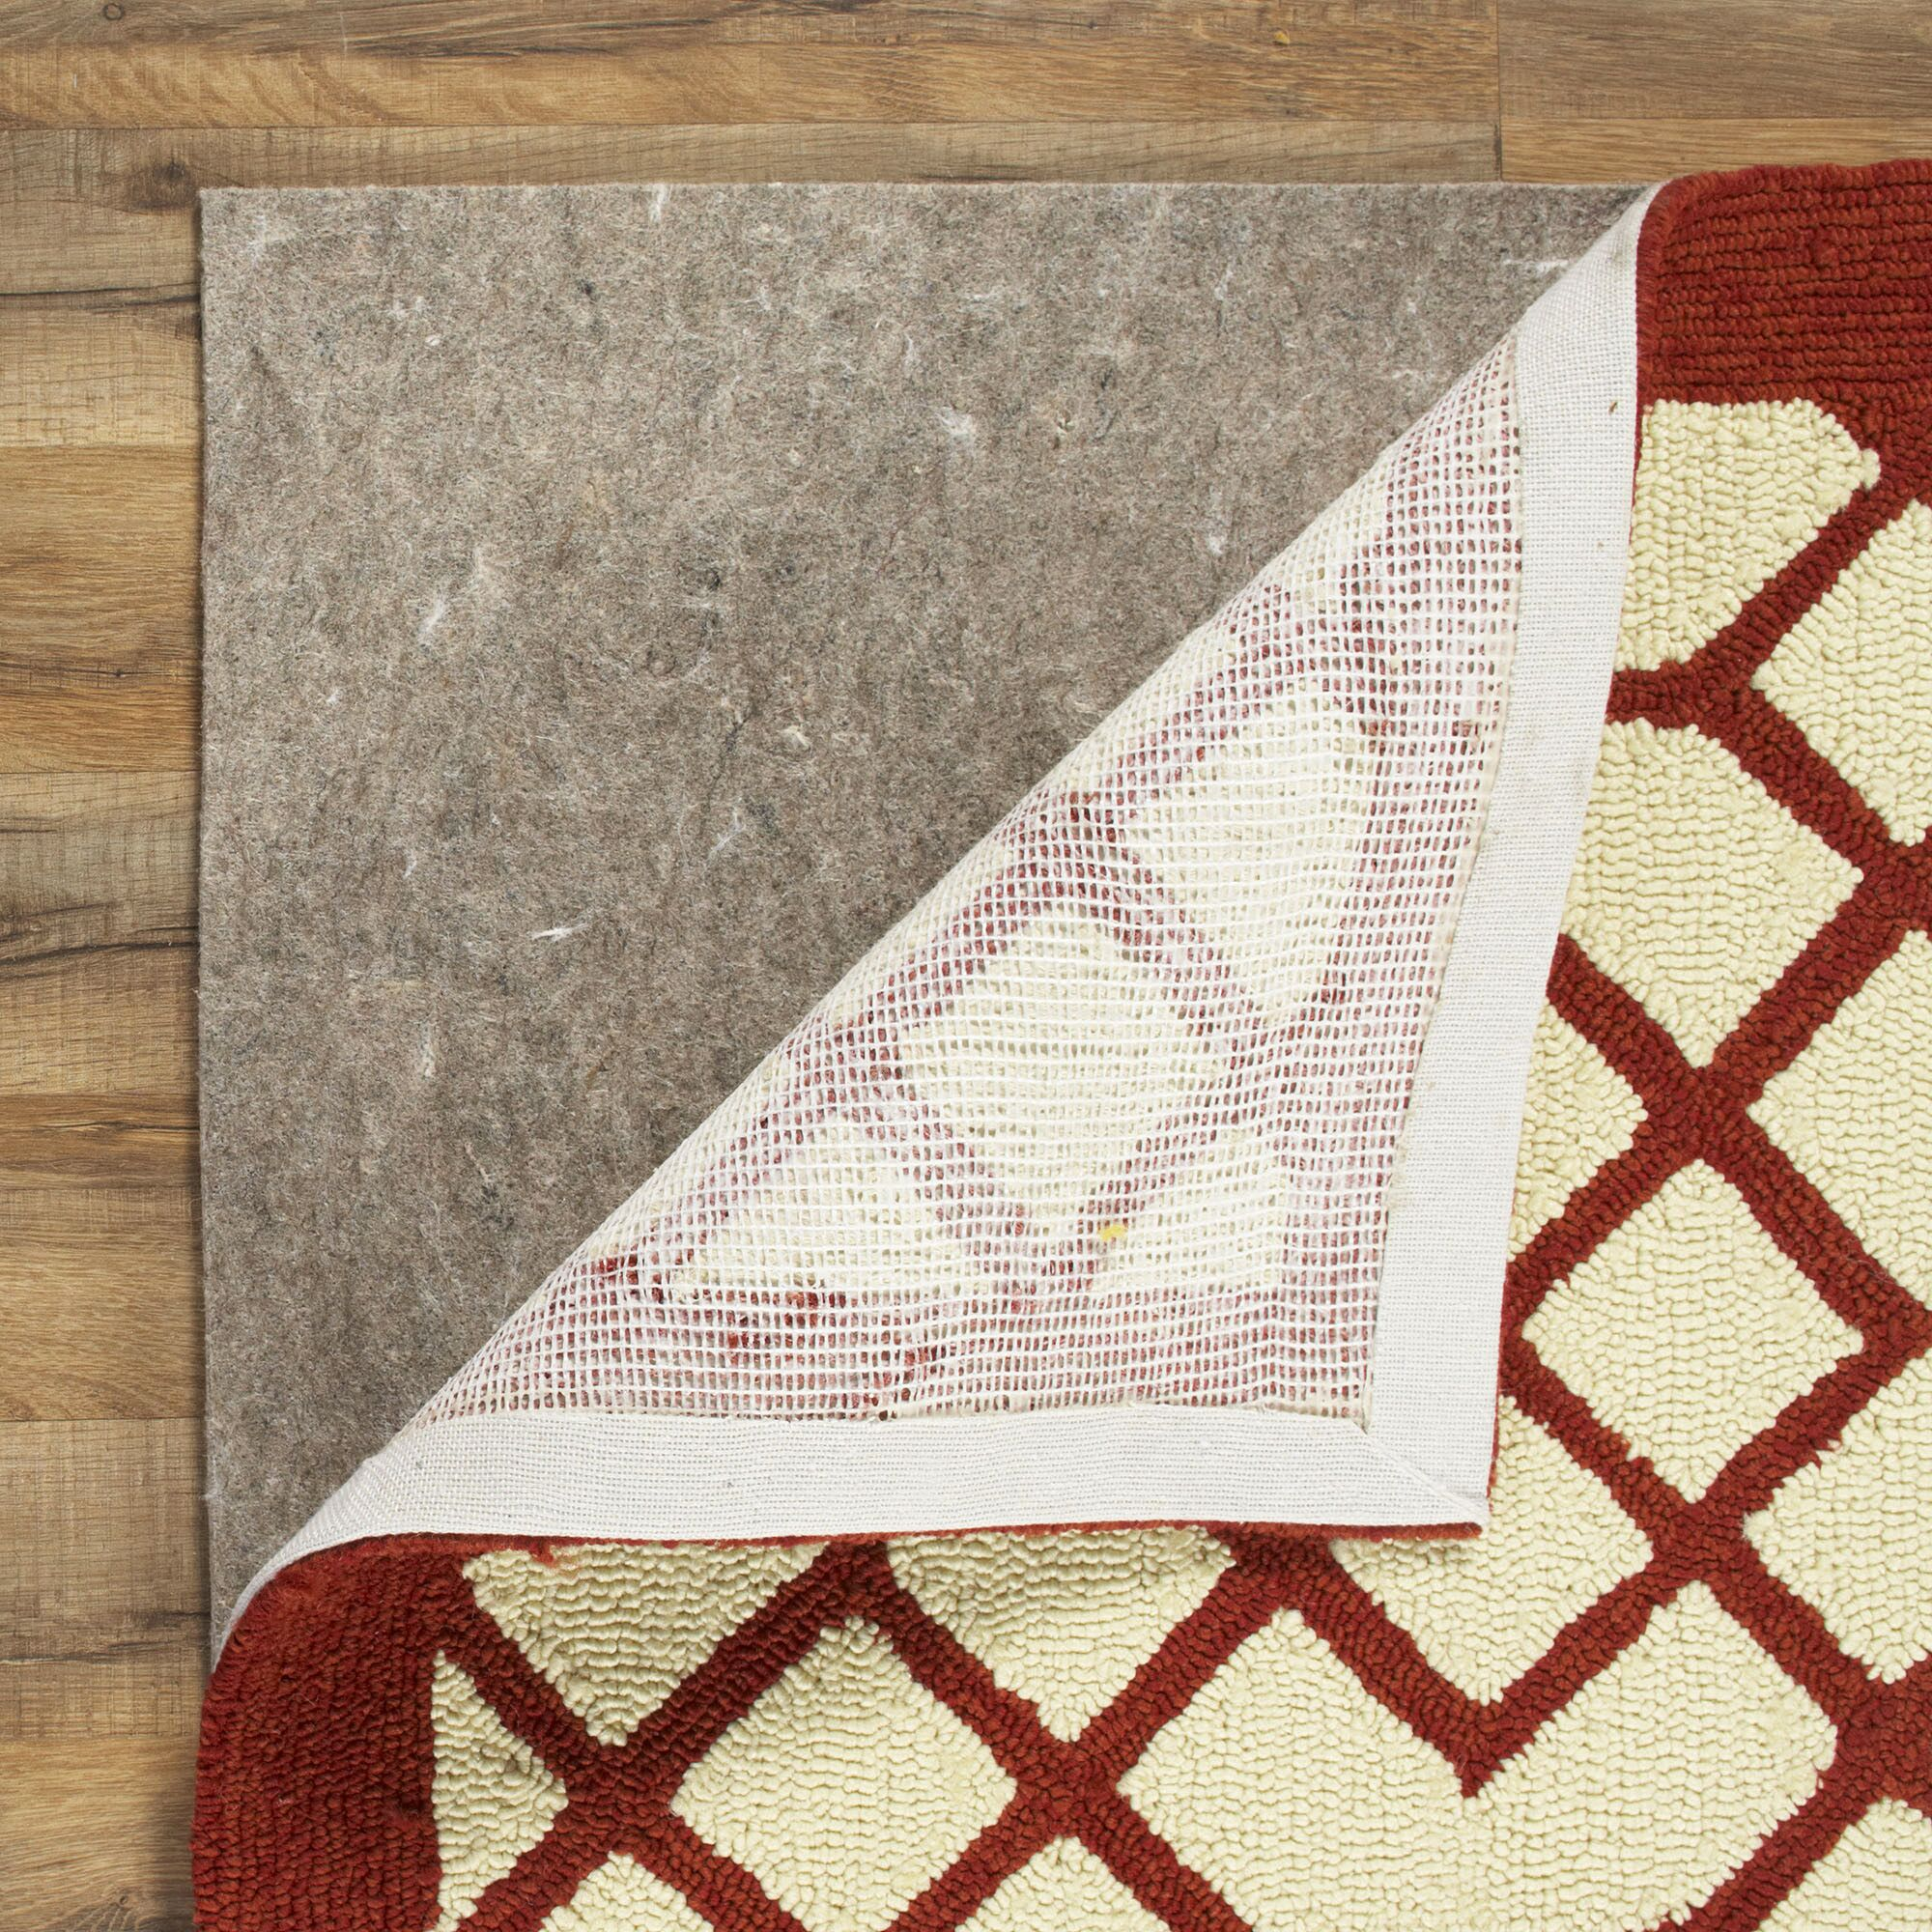 Deluxe Rug Pad Rug Pad Size: Rectangle 8' x 10'